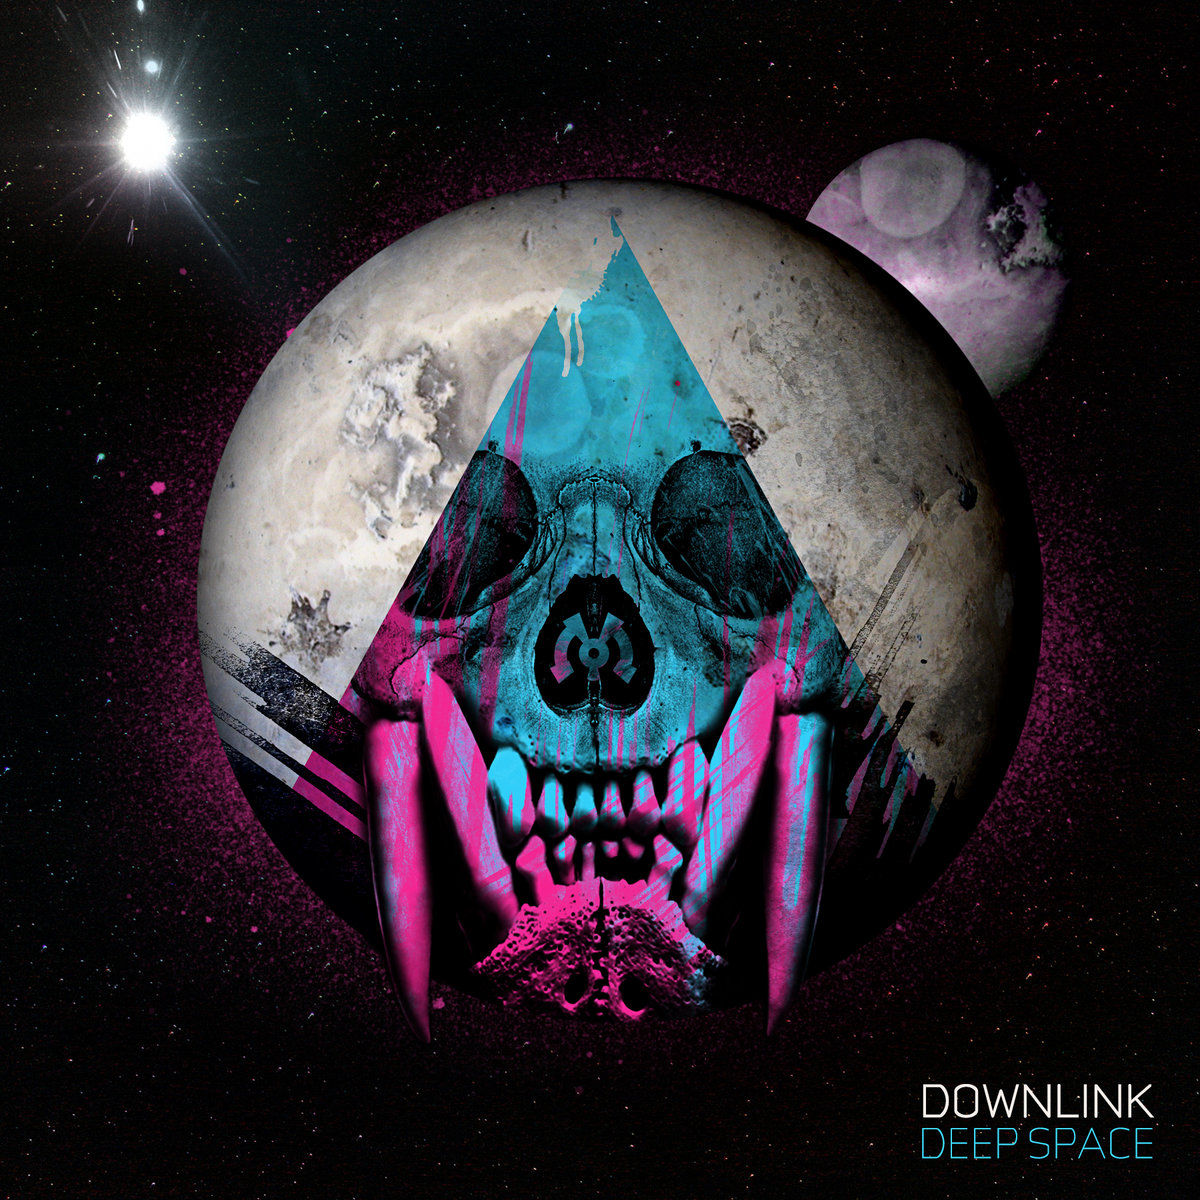 Downlink - Deep Space (Blackheart Remix) @ 'Deep Space' album (electronic, dubstep)